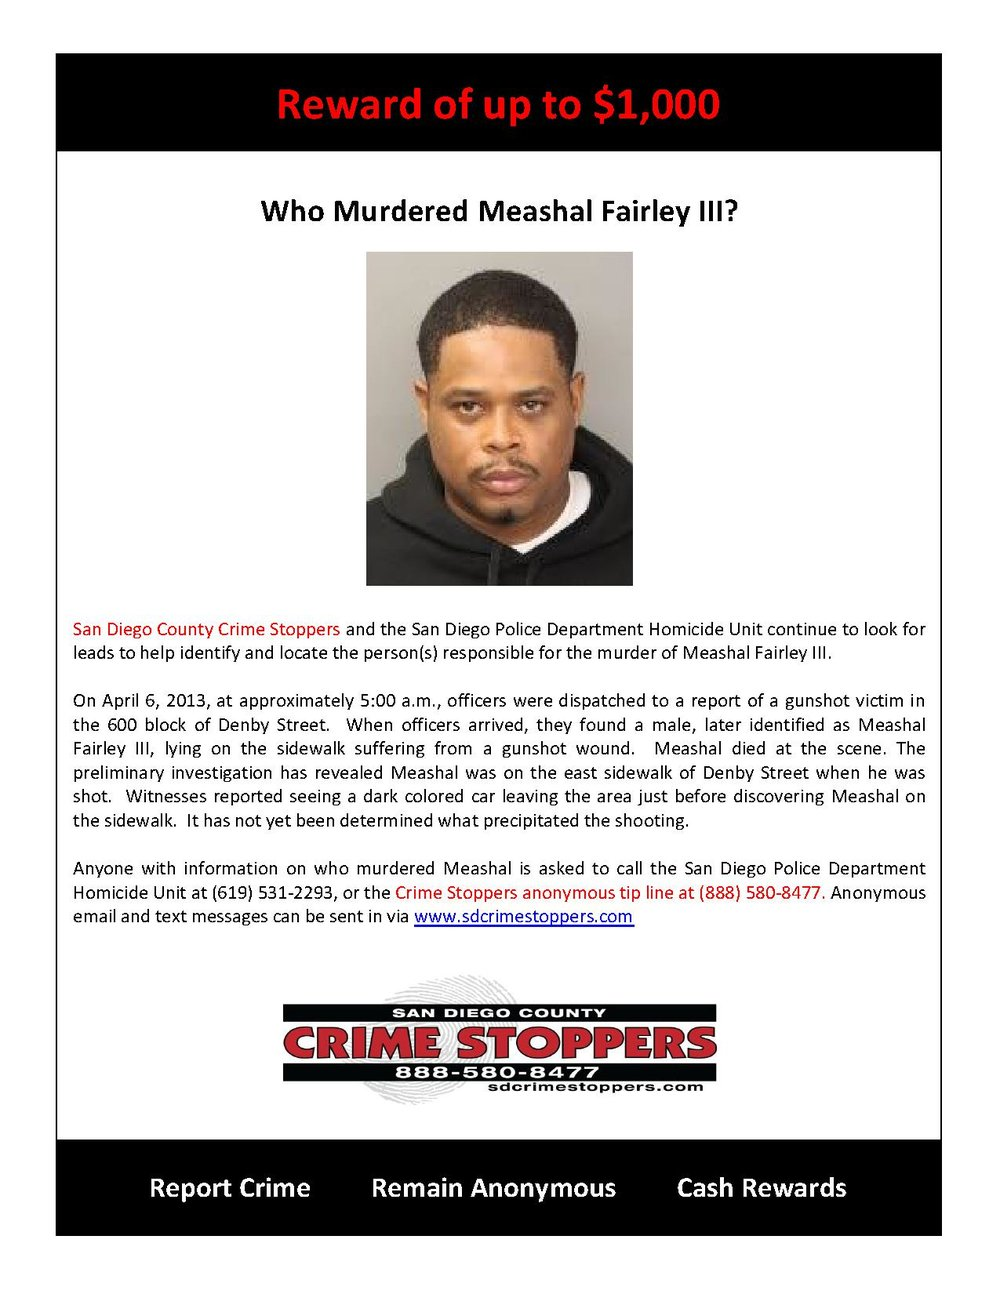 Who Murdered Meashal Fairley III_1